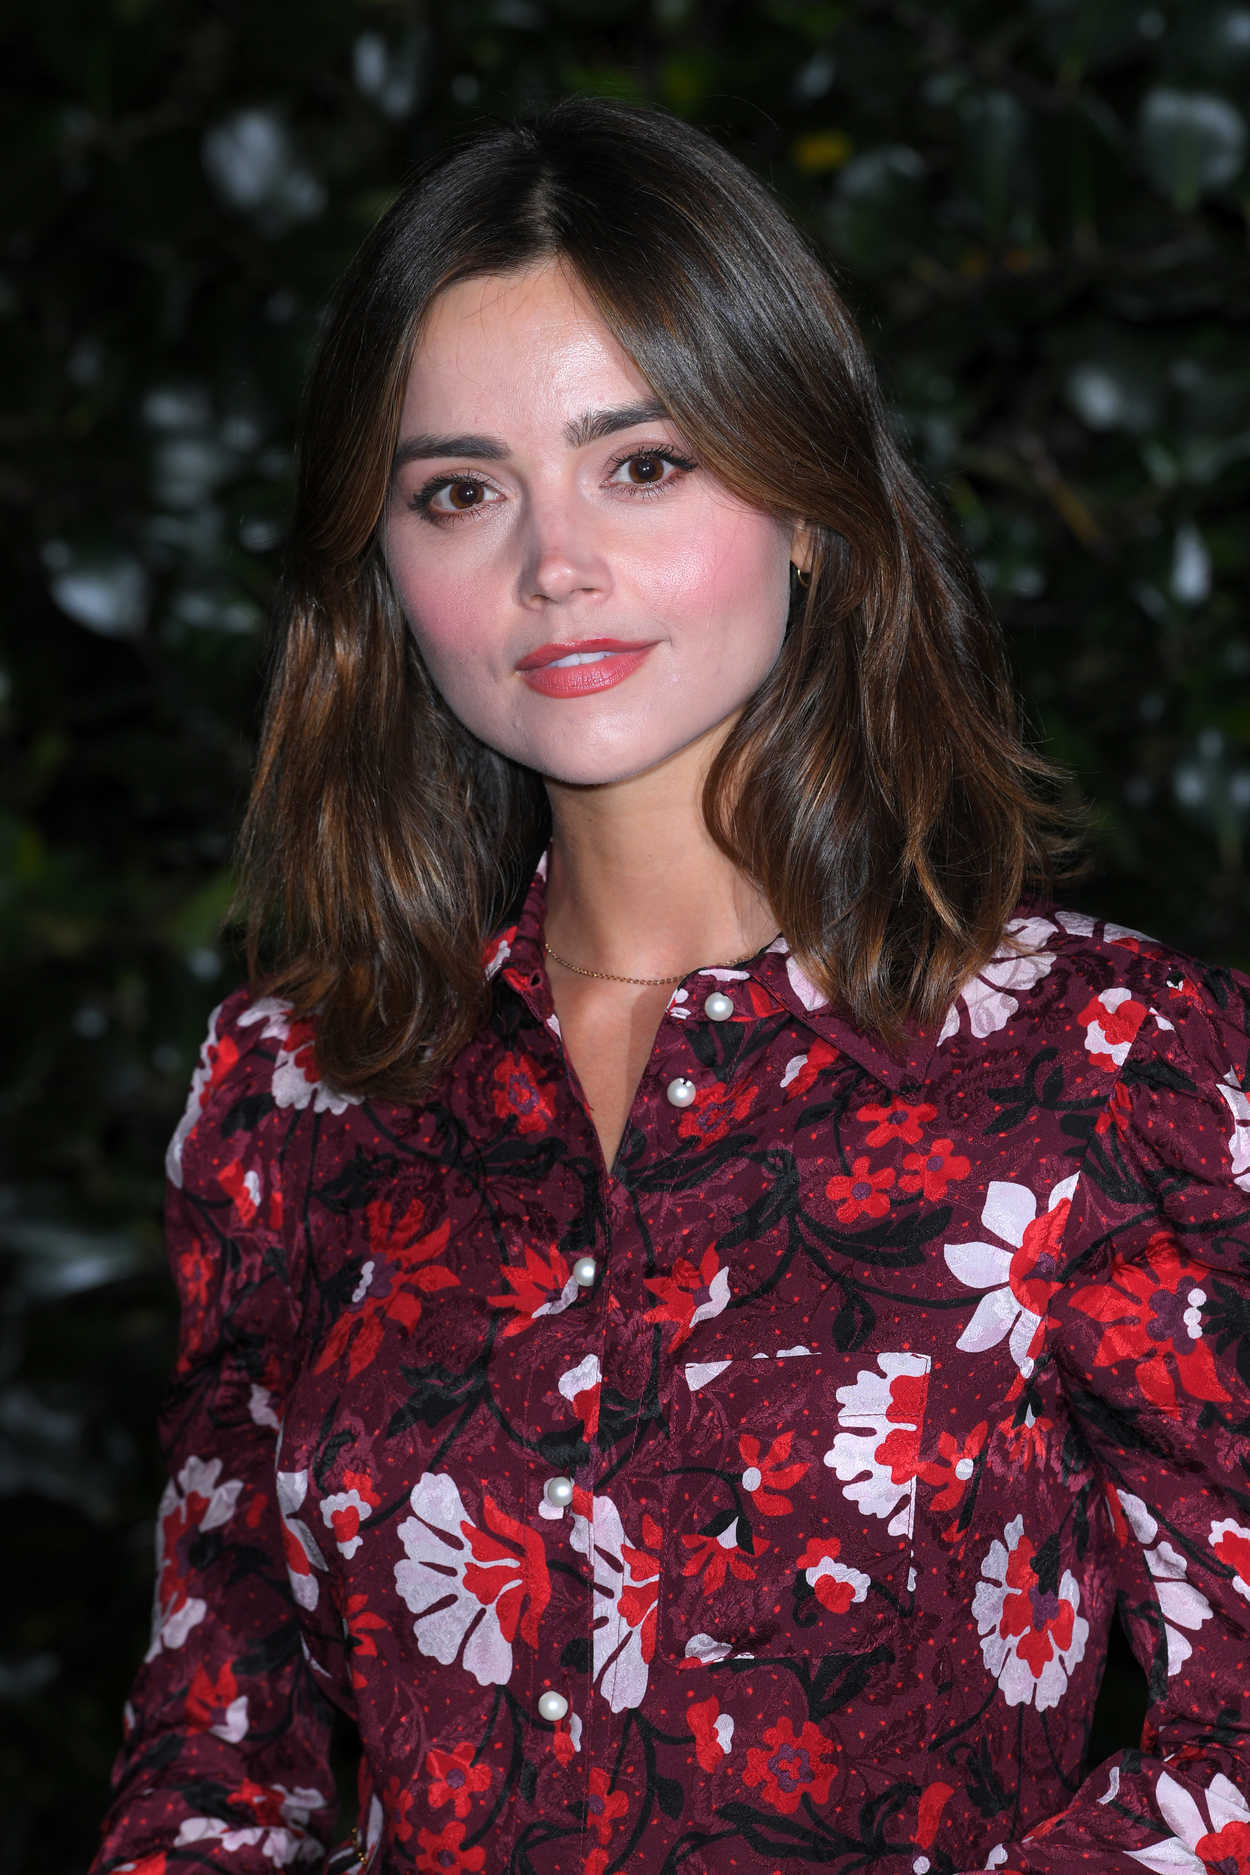 Jenna-Louise Coleman at the Victoria TV Show Photocall in London 10/09/2017-4